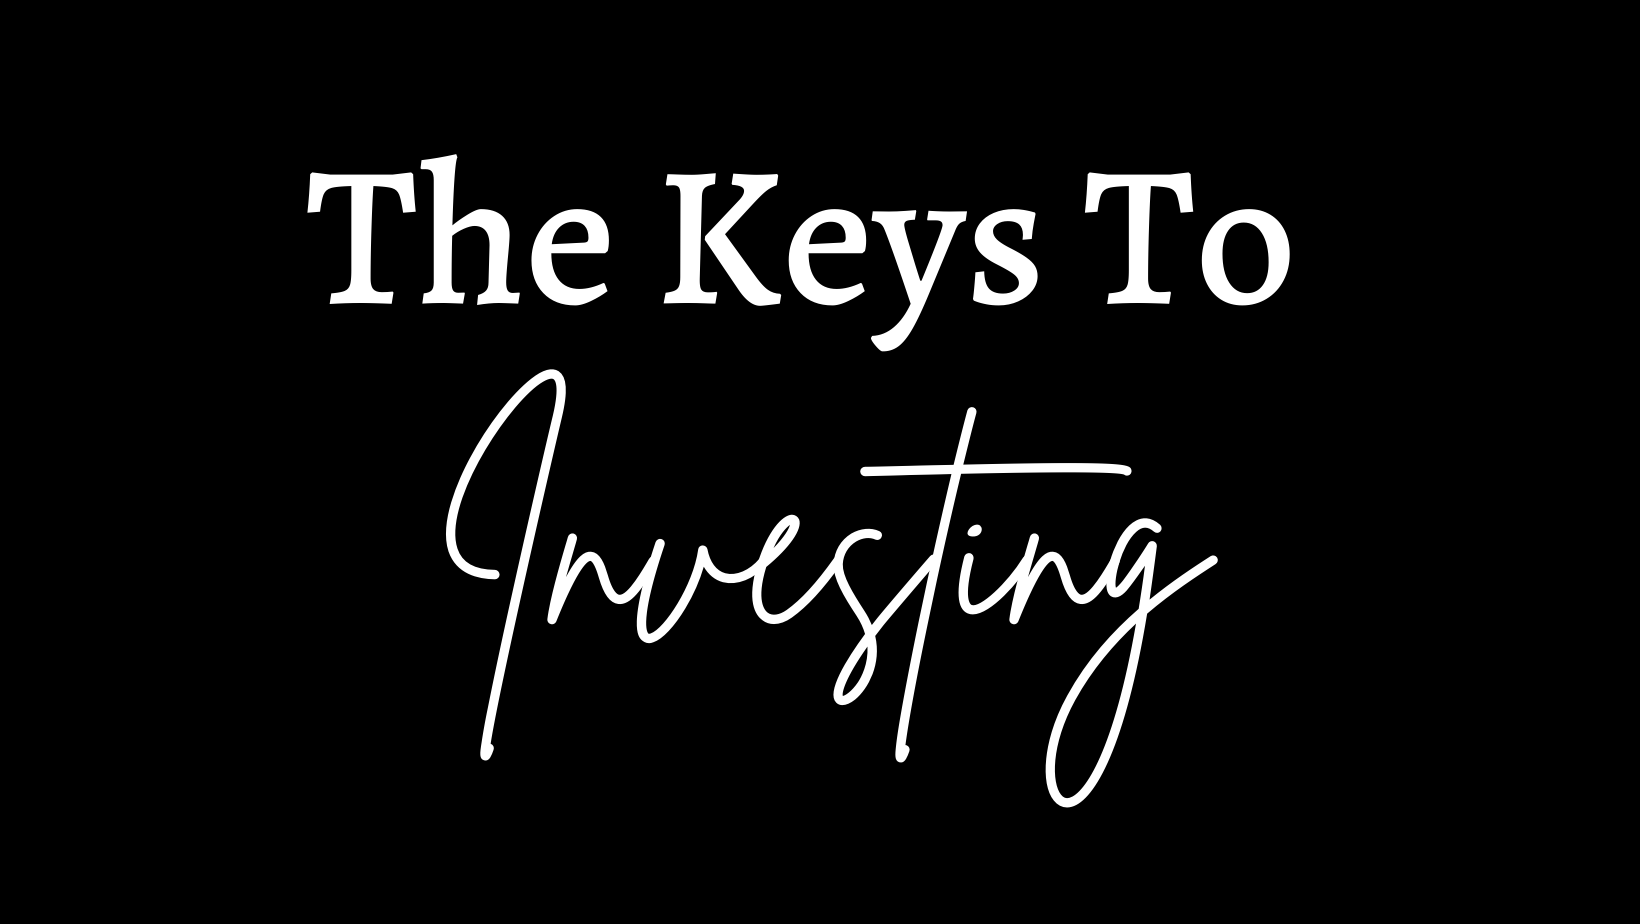 The Keys To Investing Course  Image of y1uY8b62TjqdkjKNGgLl Untitled design 16